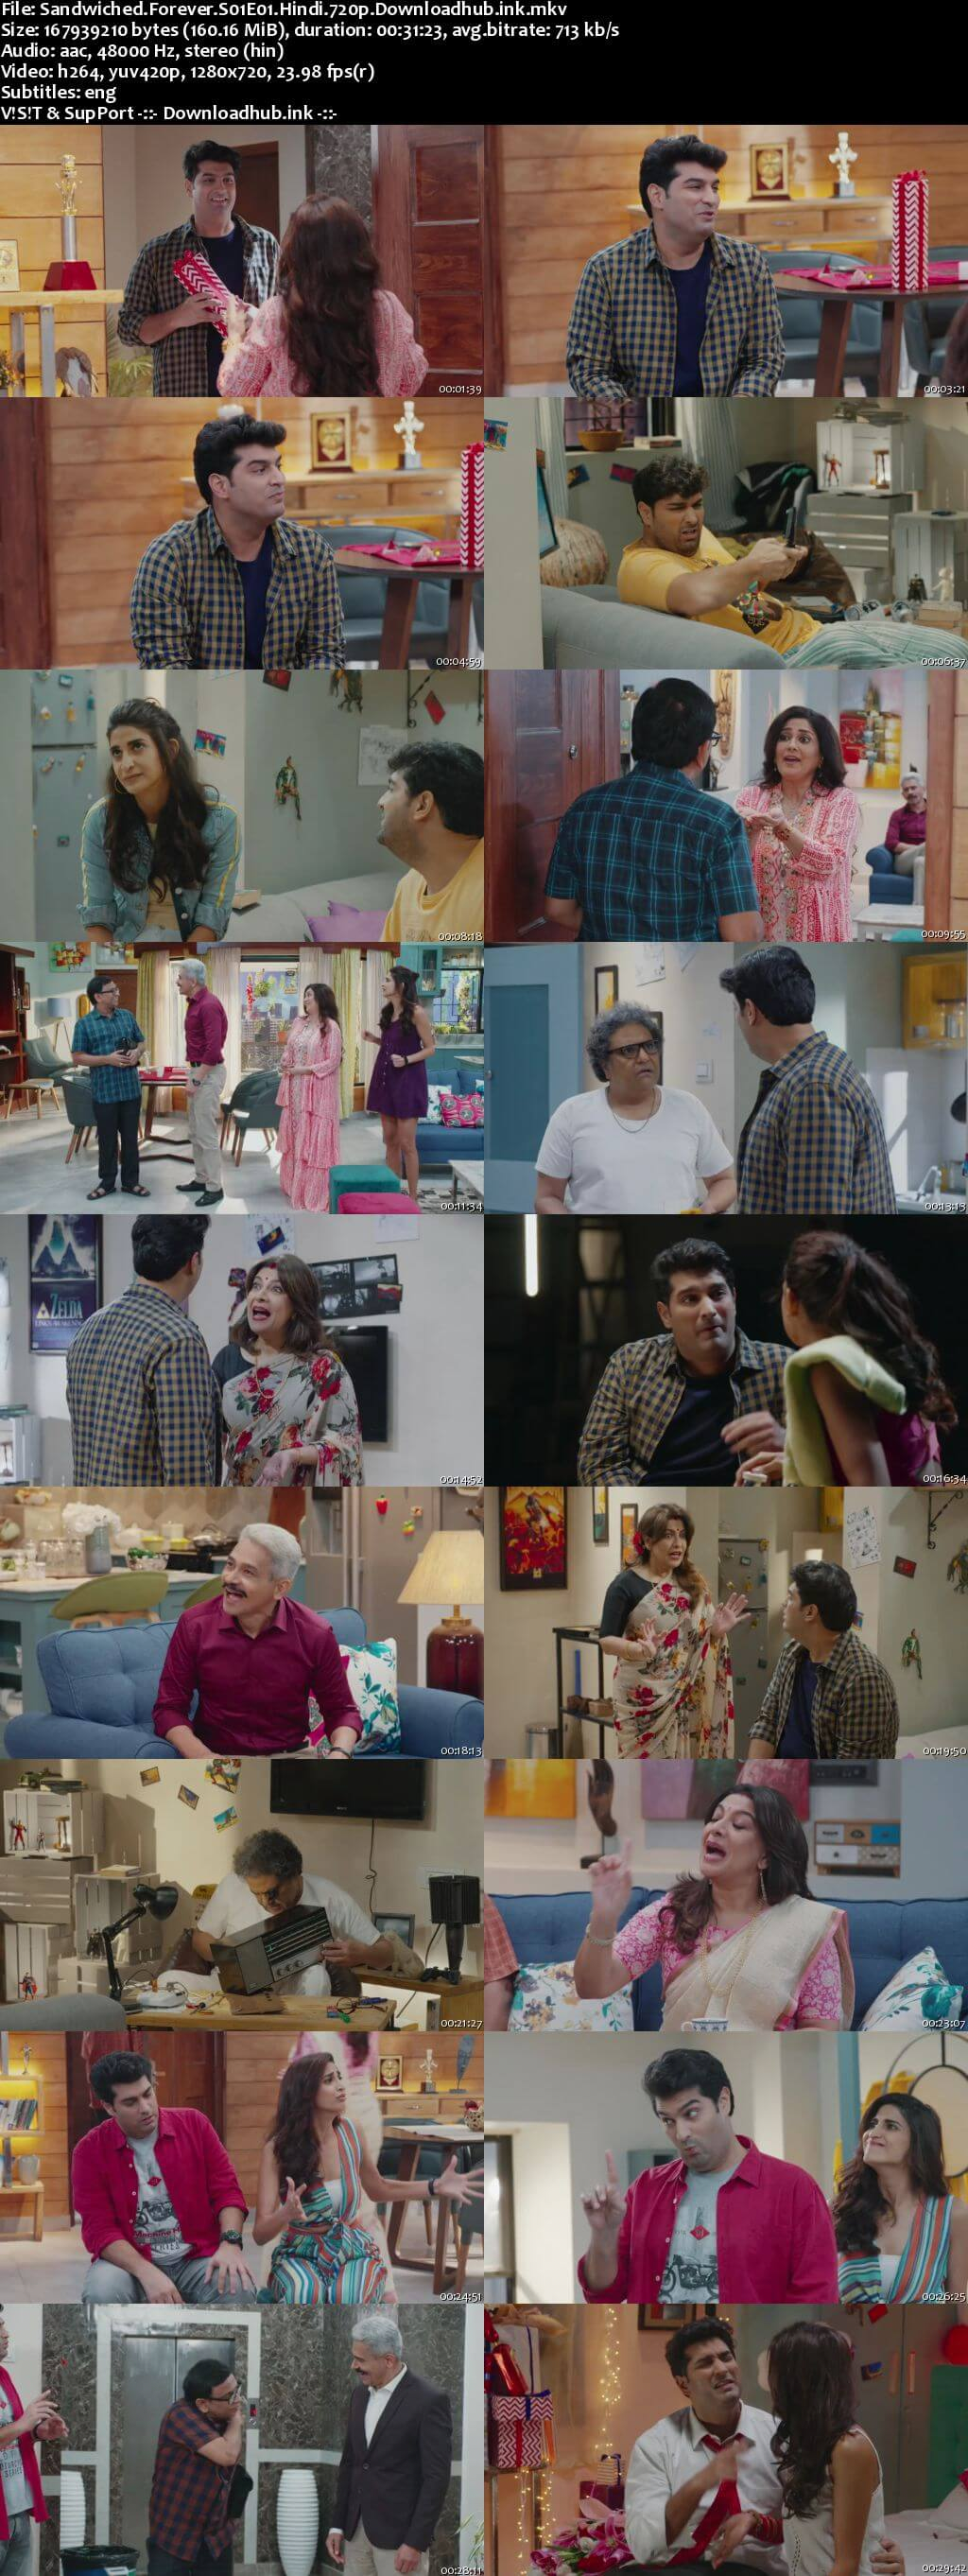 Sandwiched Forever 2020 Hindi Season 01 Complete 720p HDRip ESubs